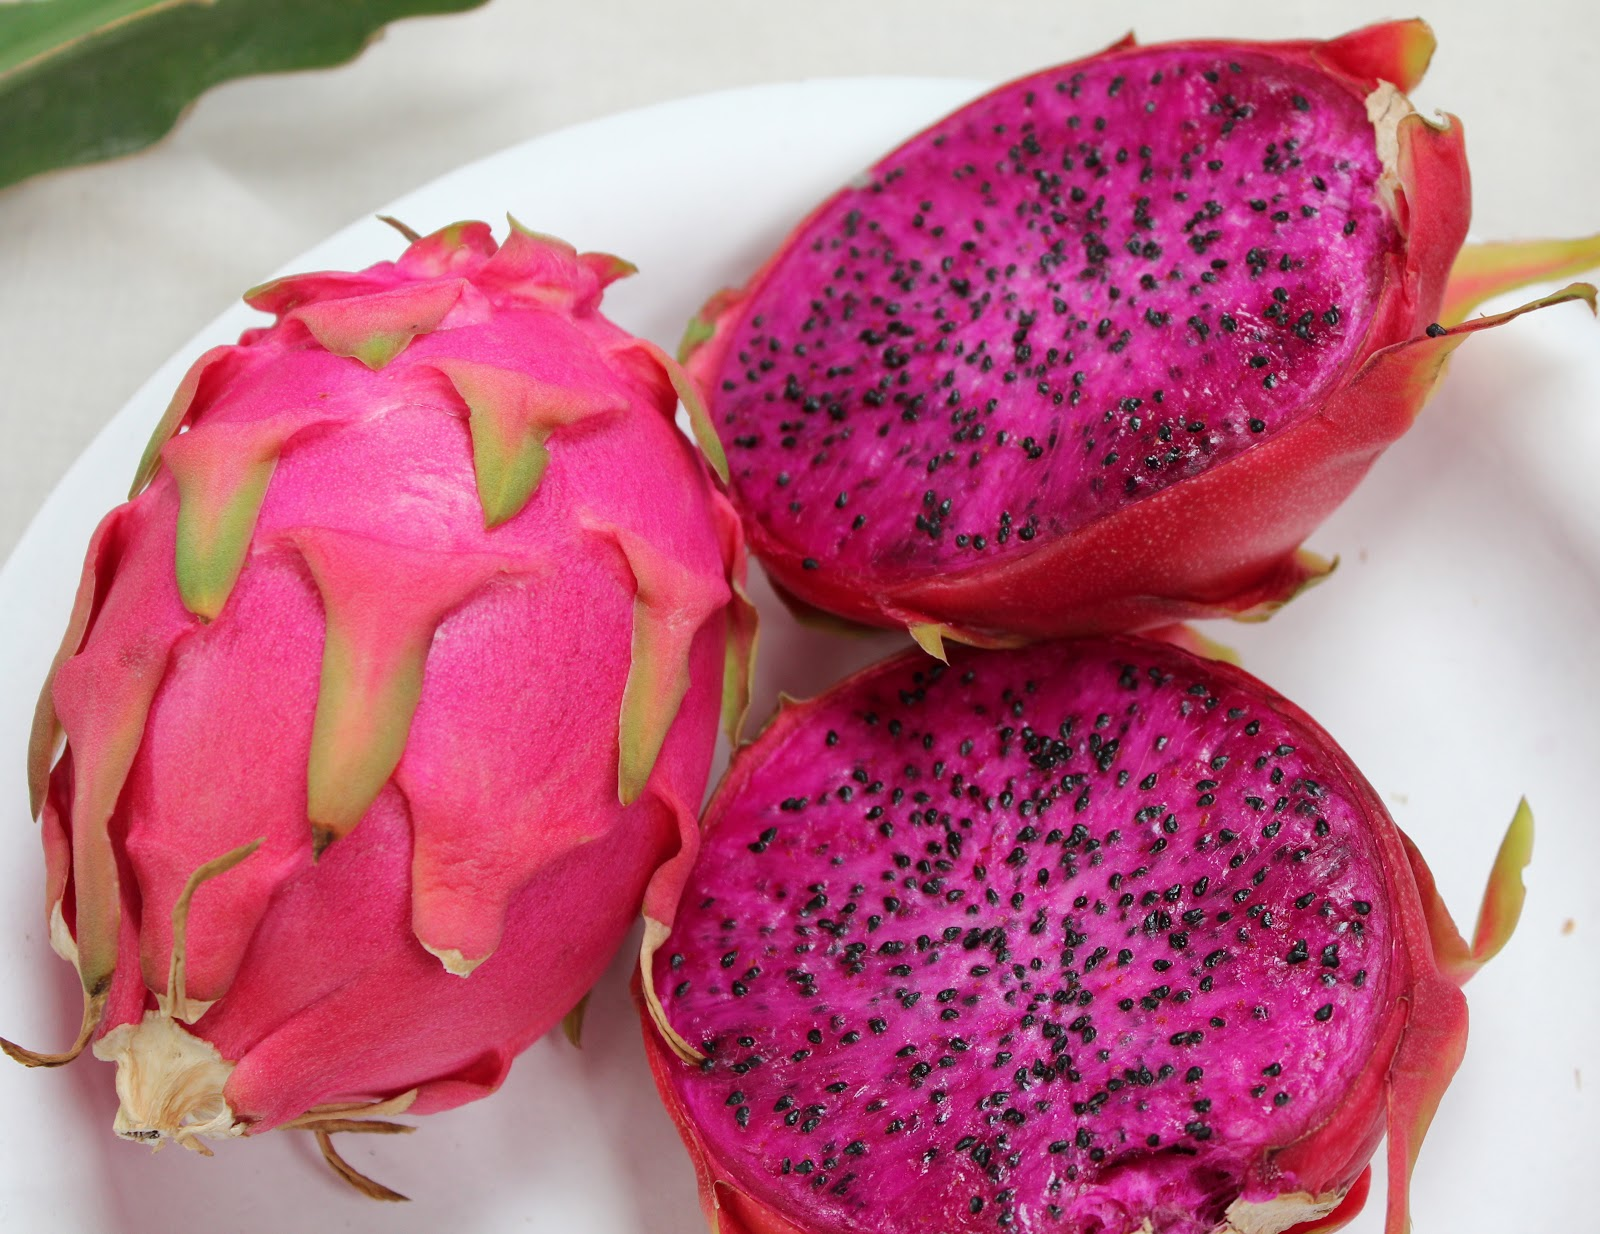 Pink dragon fruit is now readily available in supermarkets all over London such as Sainsbury's, ASDA and Tesco. You can even find them in organic fruit markets.